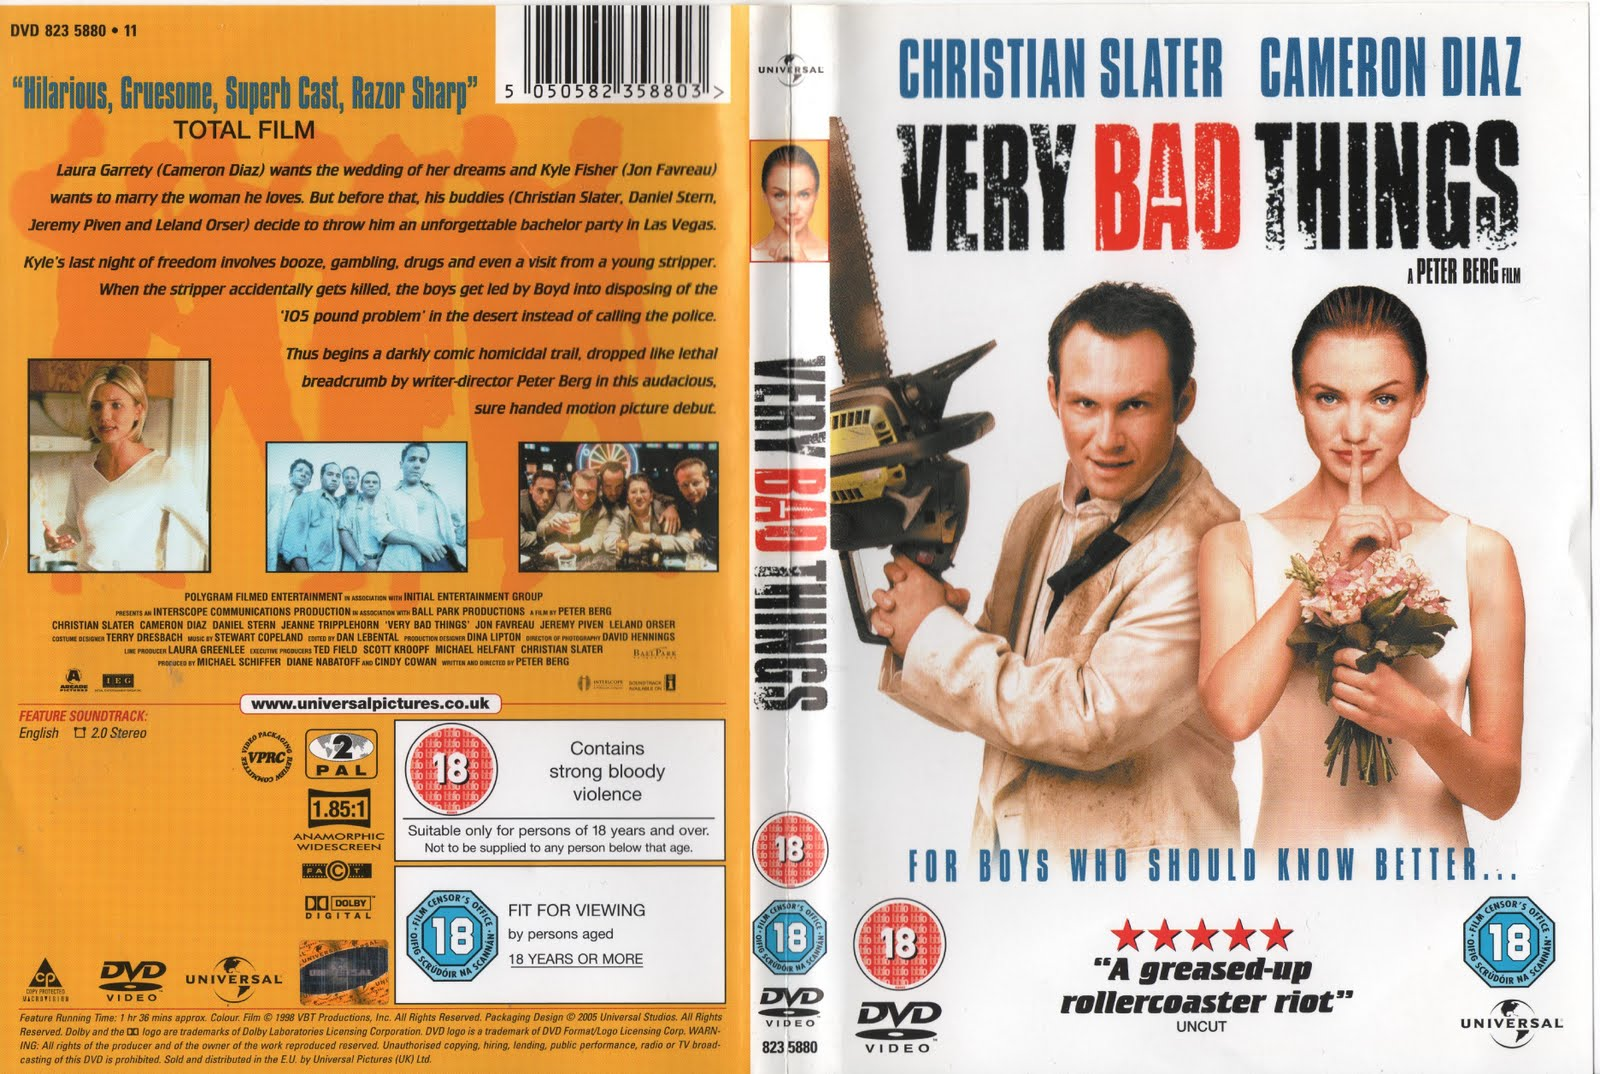 http://1.bp.blogspot.com/-YnGjrF755Sk/TaQ4e_VbkXI/AAAAAAAAKW4/9IMNQSzYc4g/s1600/very_bad_things_1998_retail_dvd-front.jpg